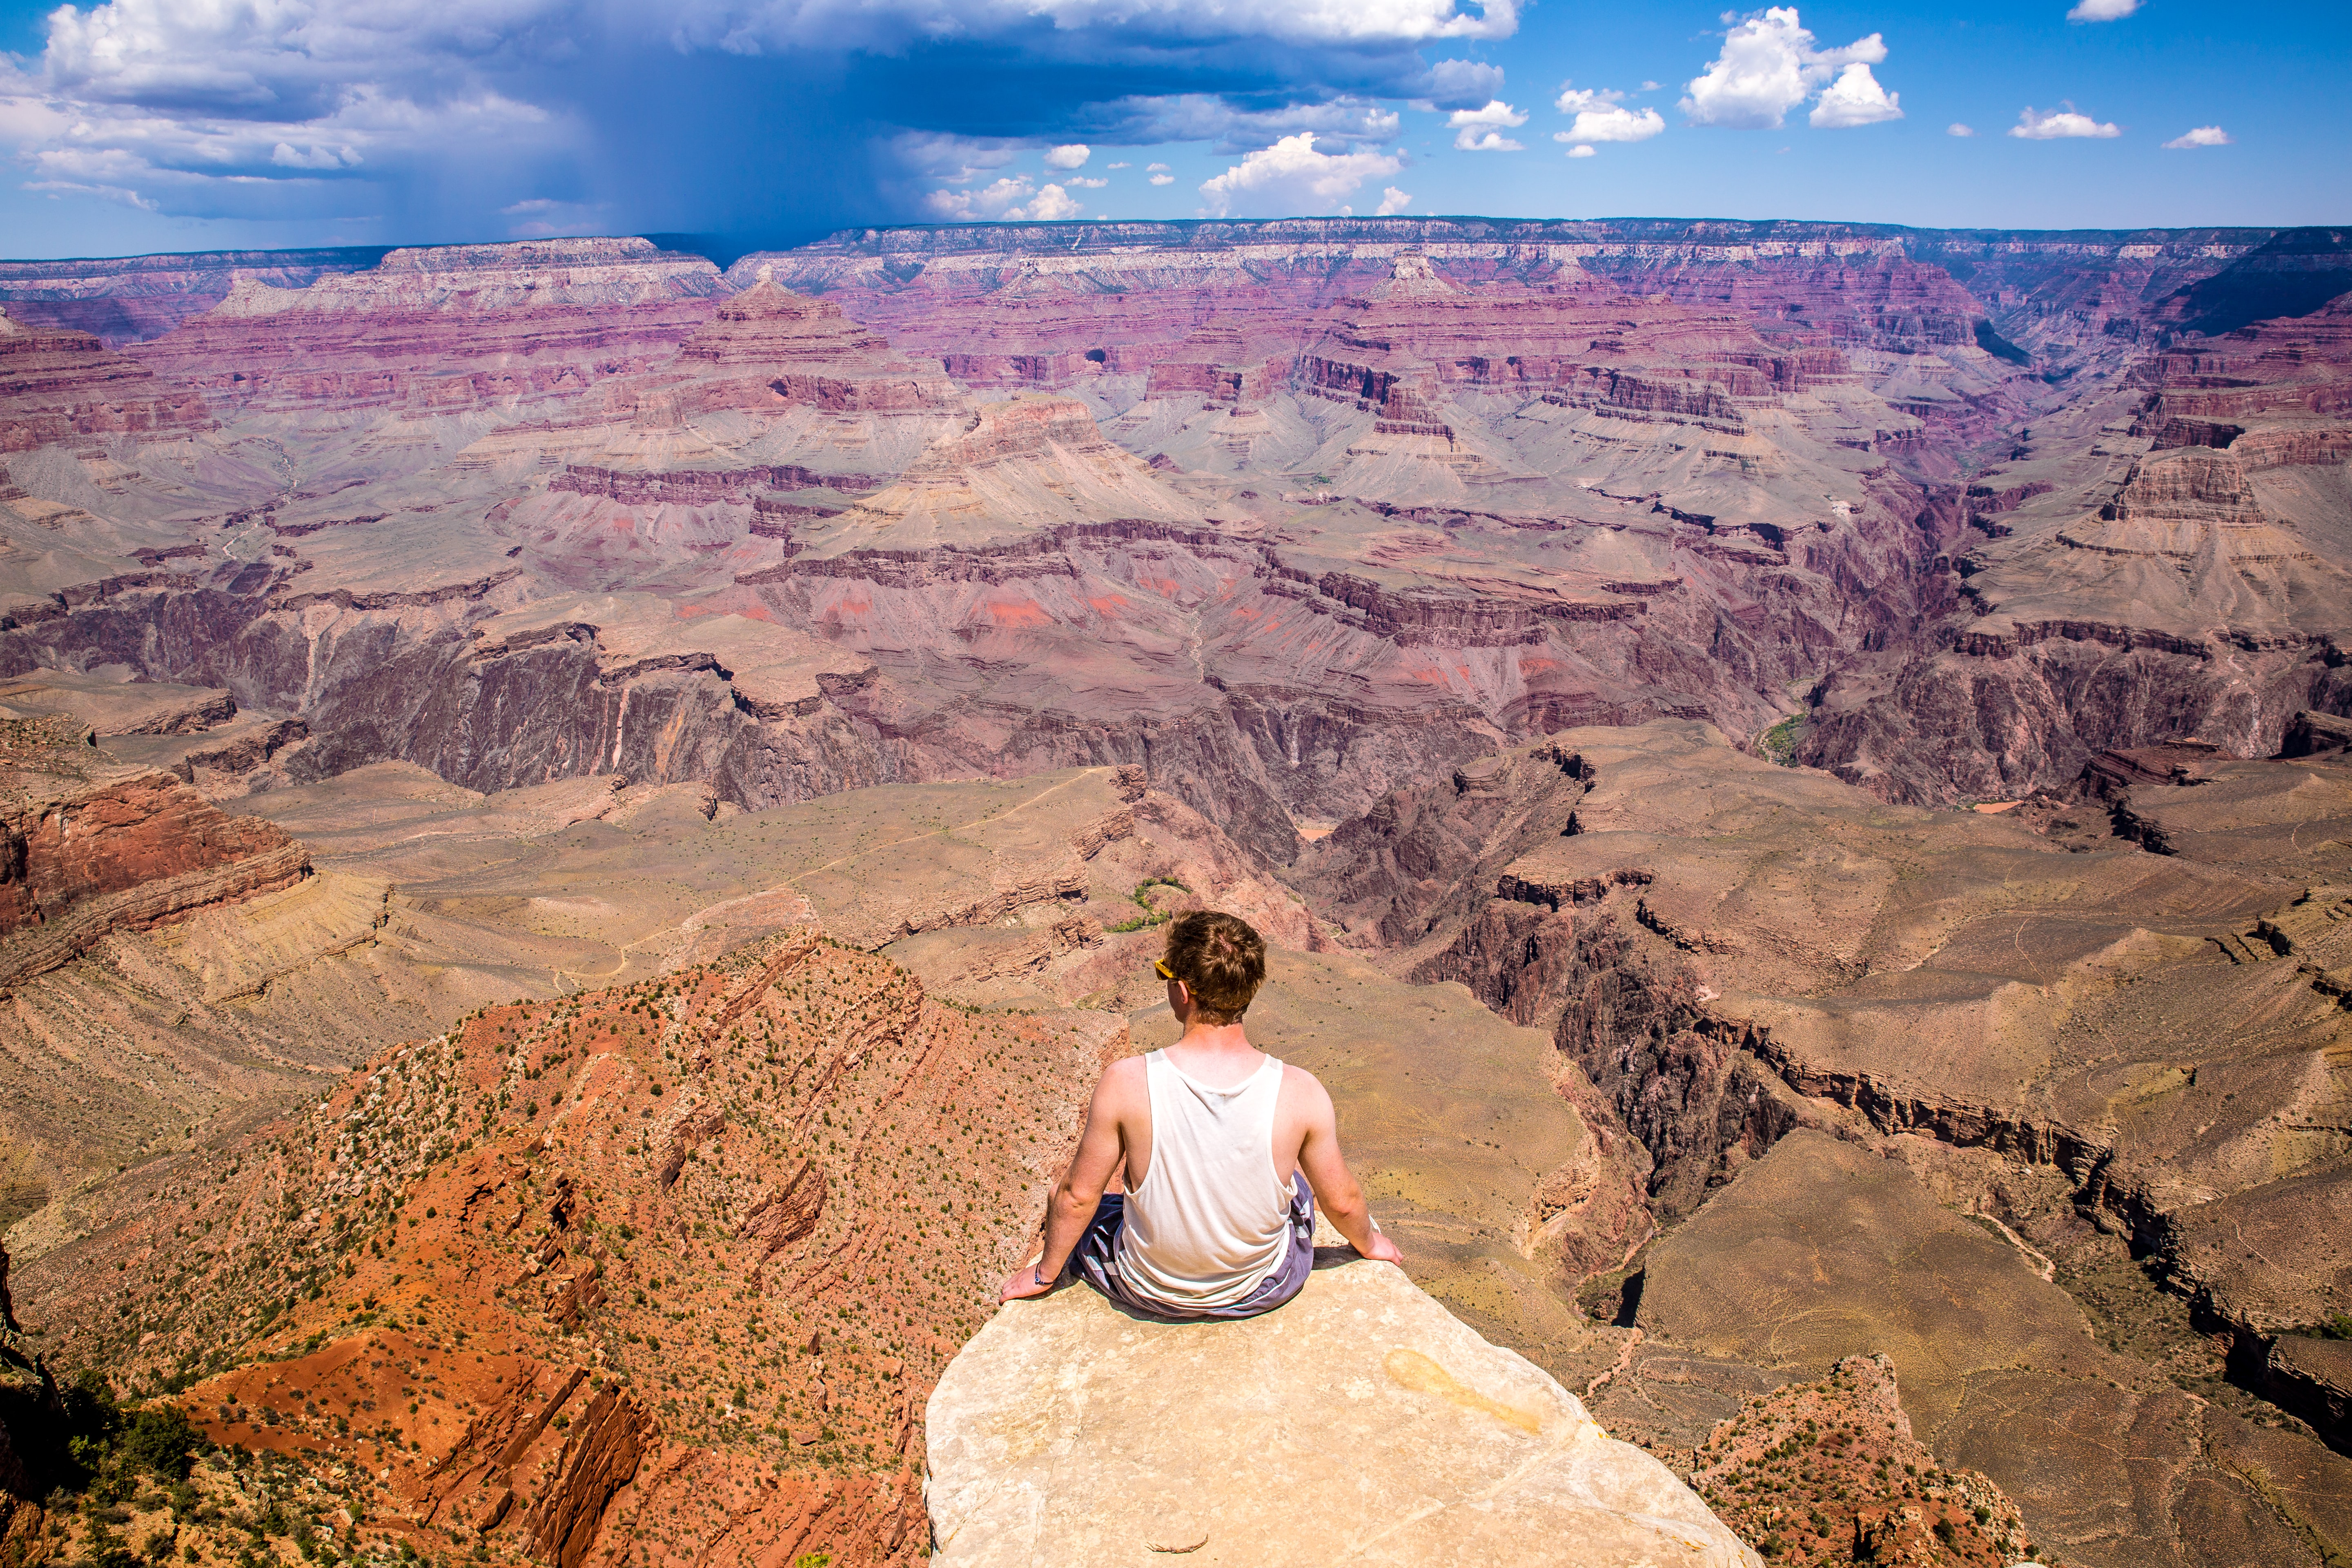 A lone visitor overlooks a vast canyon from a precipice.